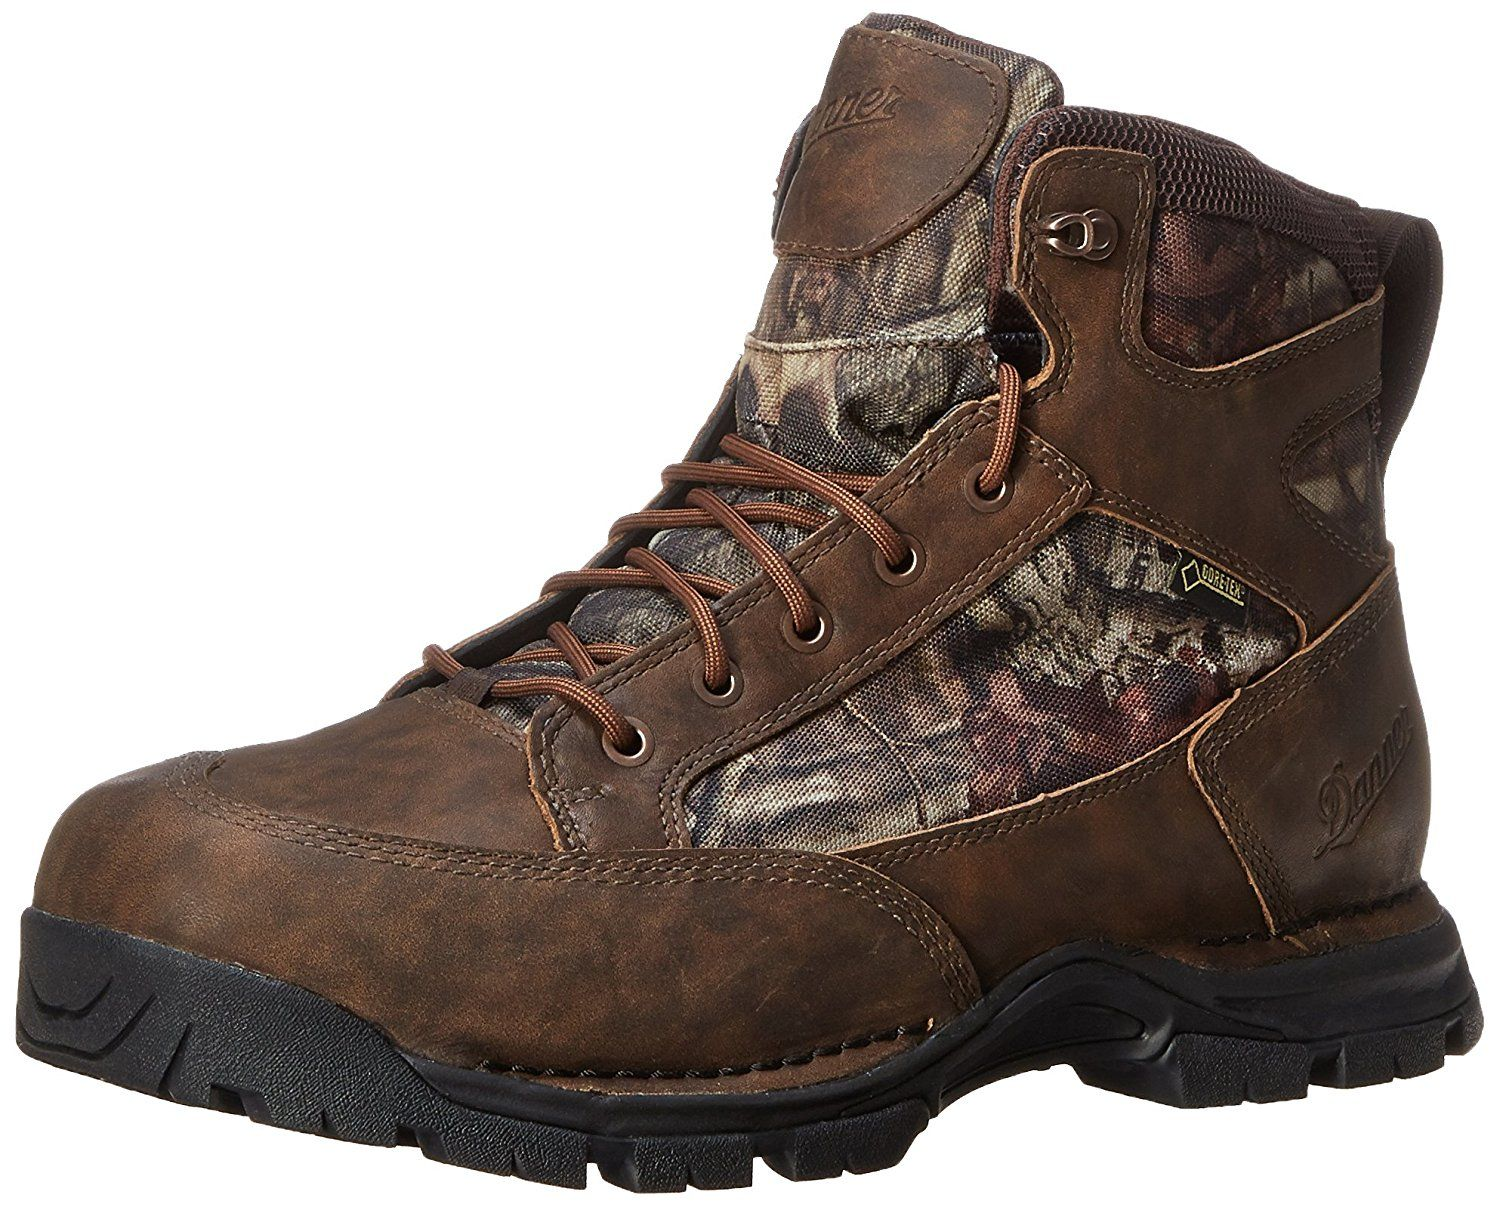 d41f17aa446 Danner Men's Pronghorn 6 Inch GTX Uninsulated Hunting Boot ...